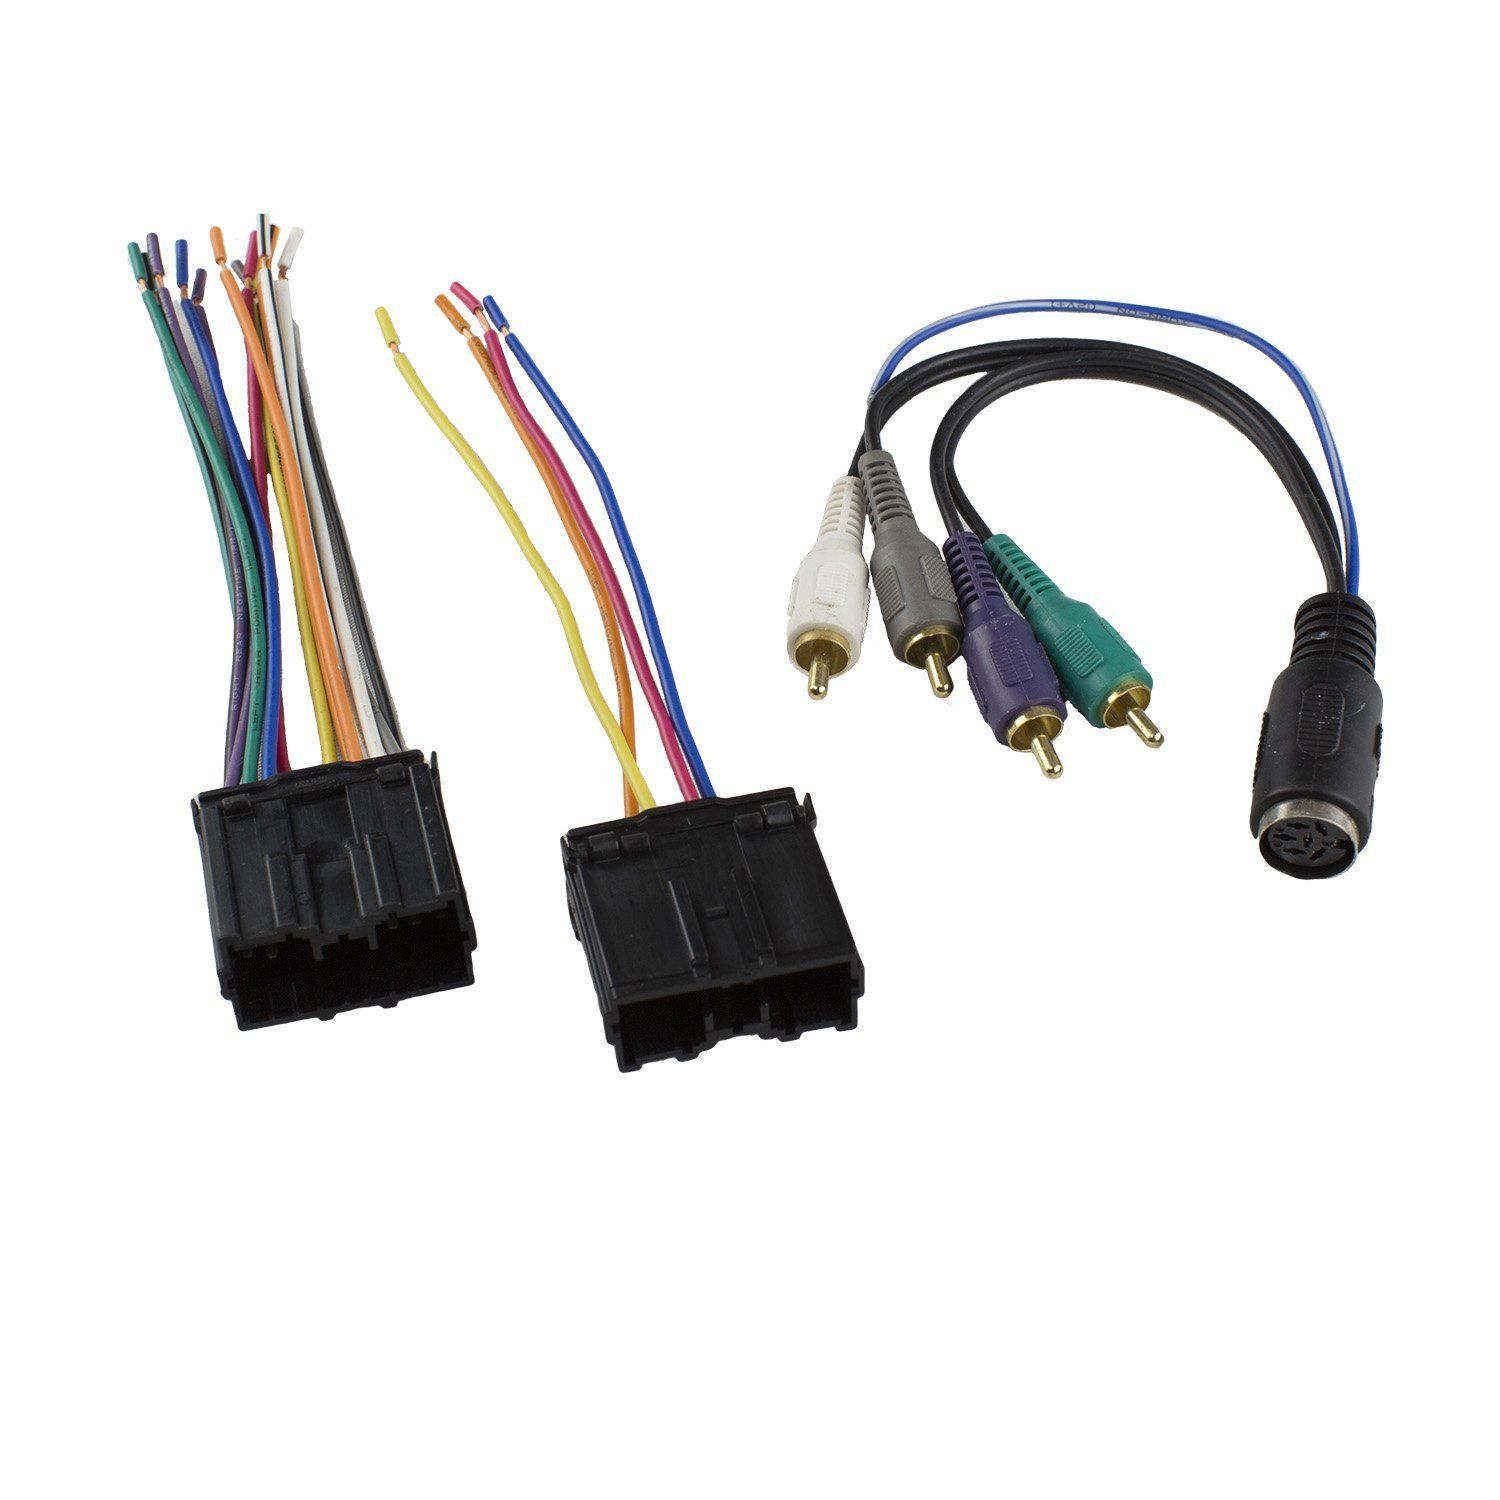 small resolution of novosonics mif 7004 wiring harness for mitsubishi 4 speaker with amp integration 1994 2007 fits existing connector in your vehicle